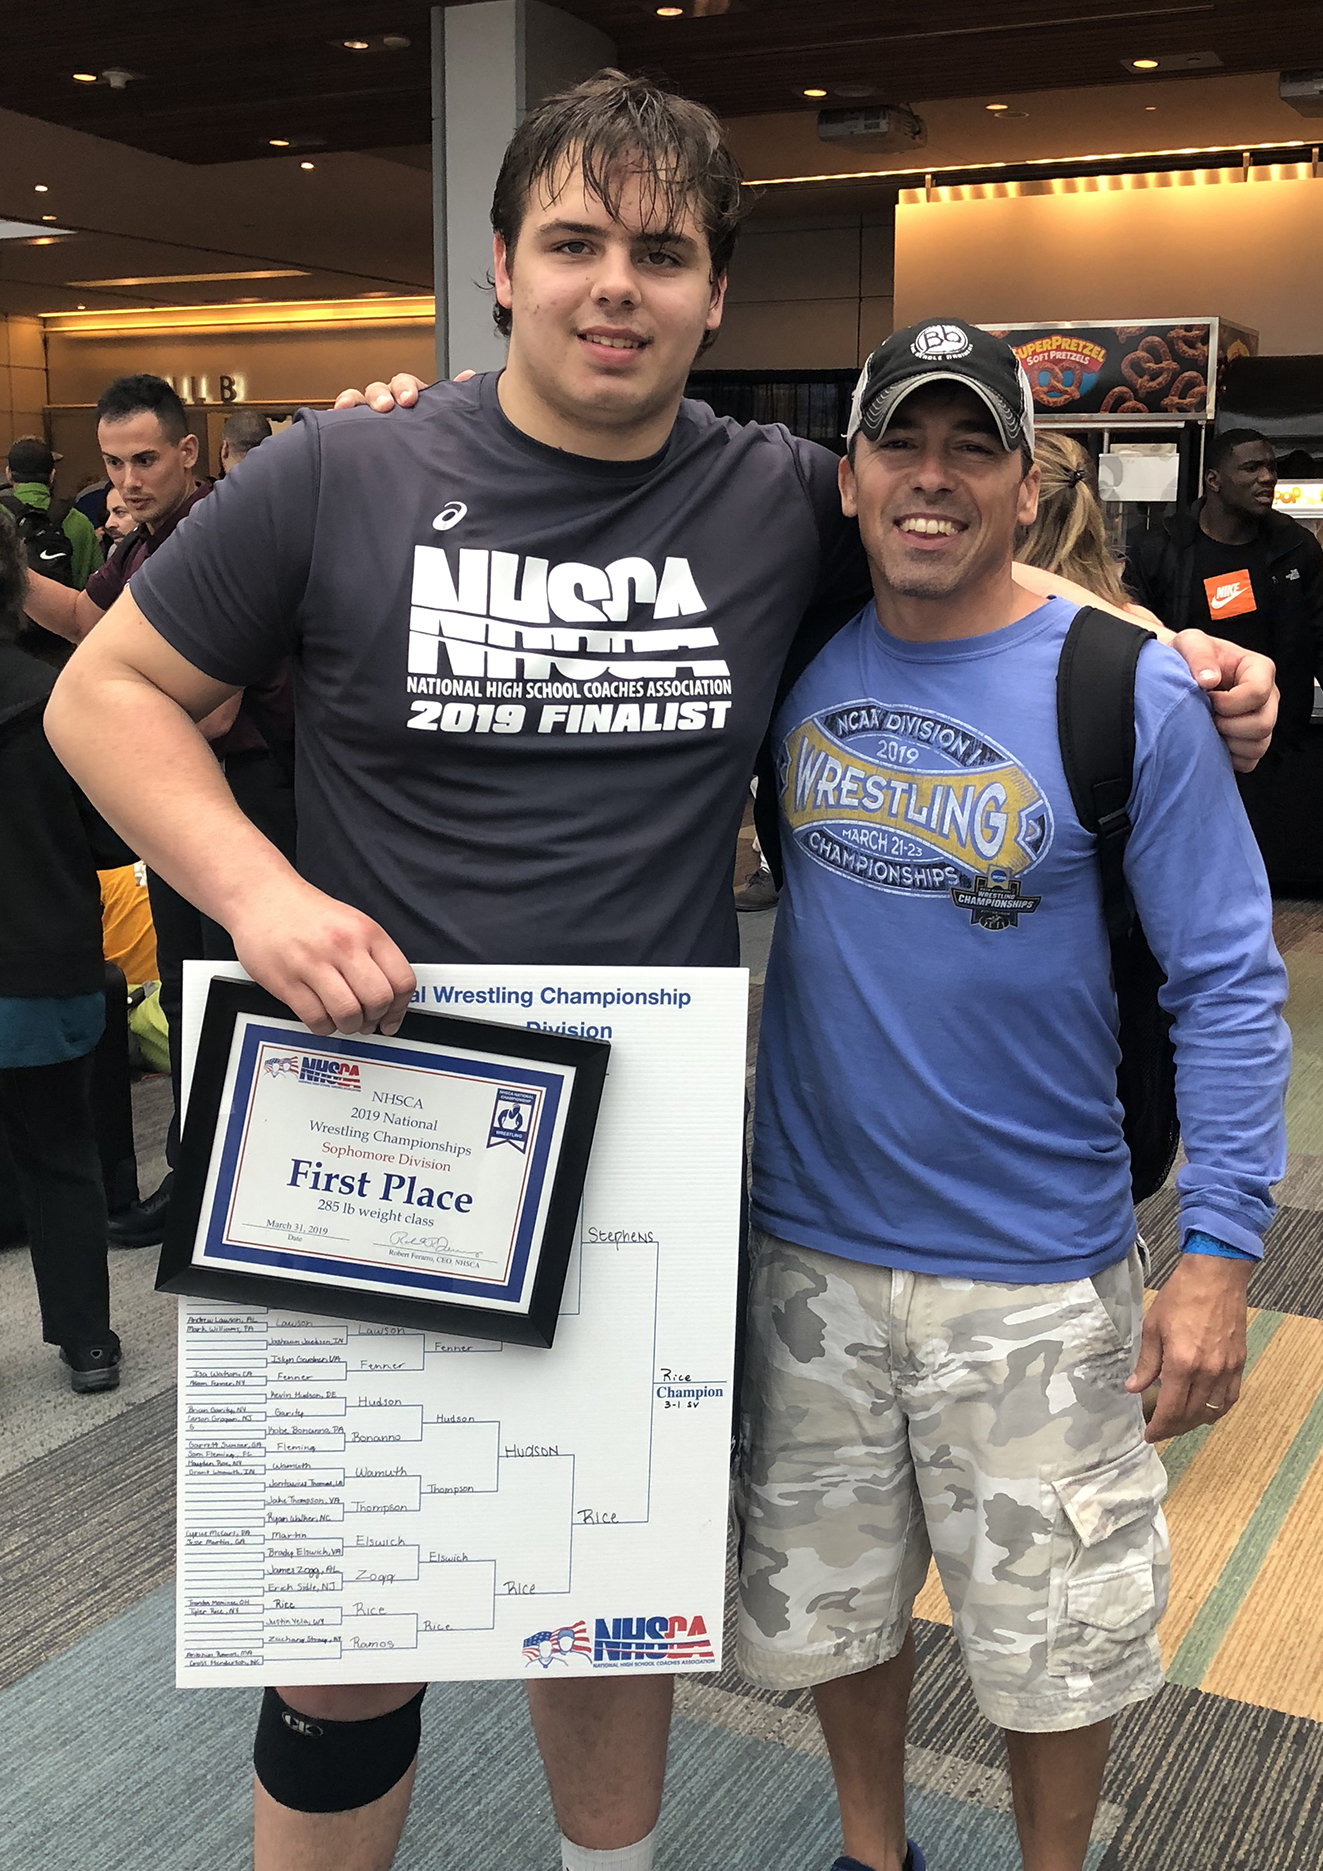 Wrestler and coach